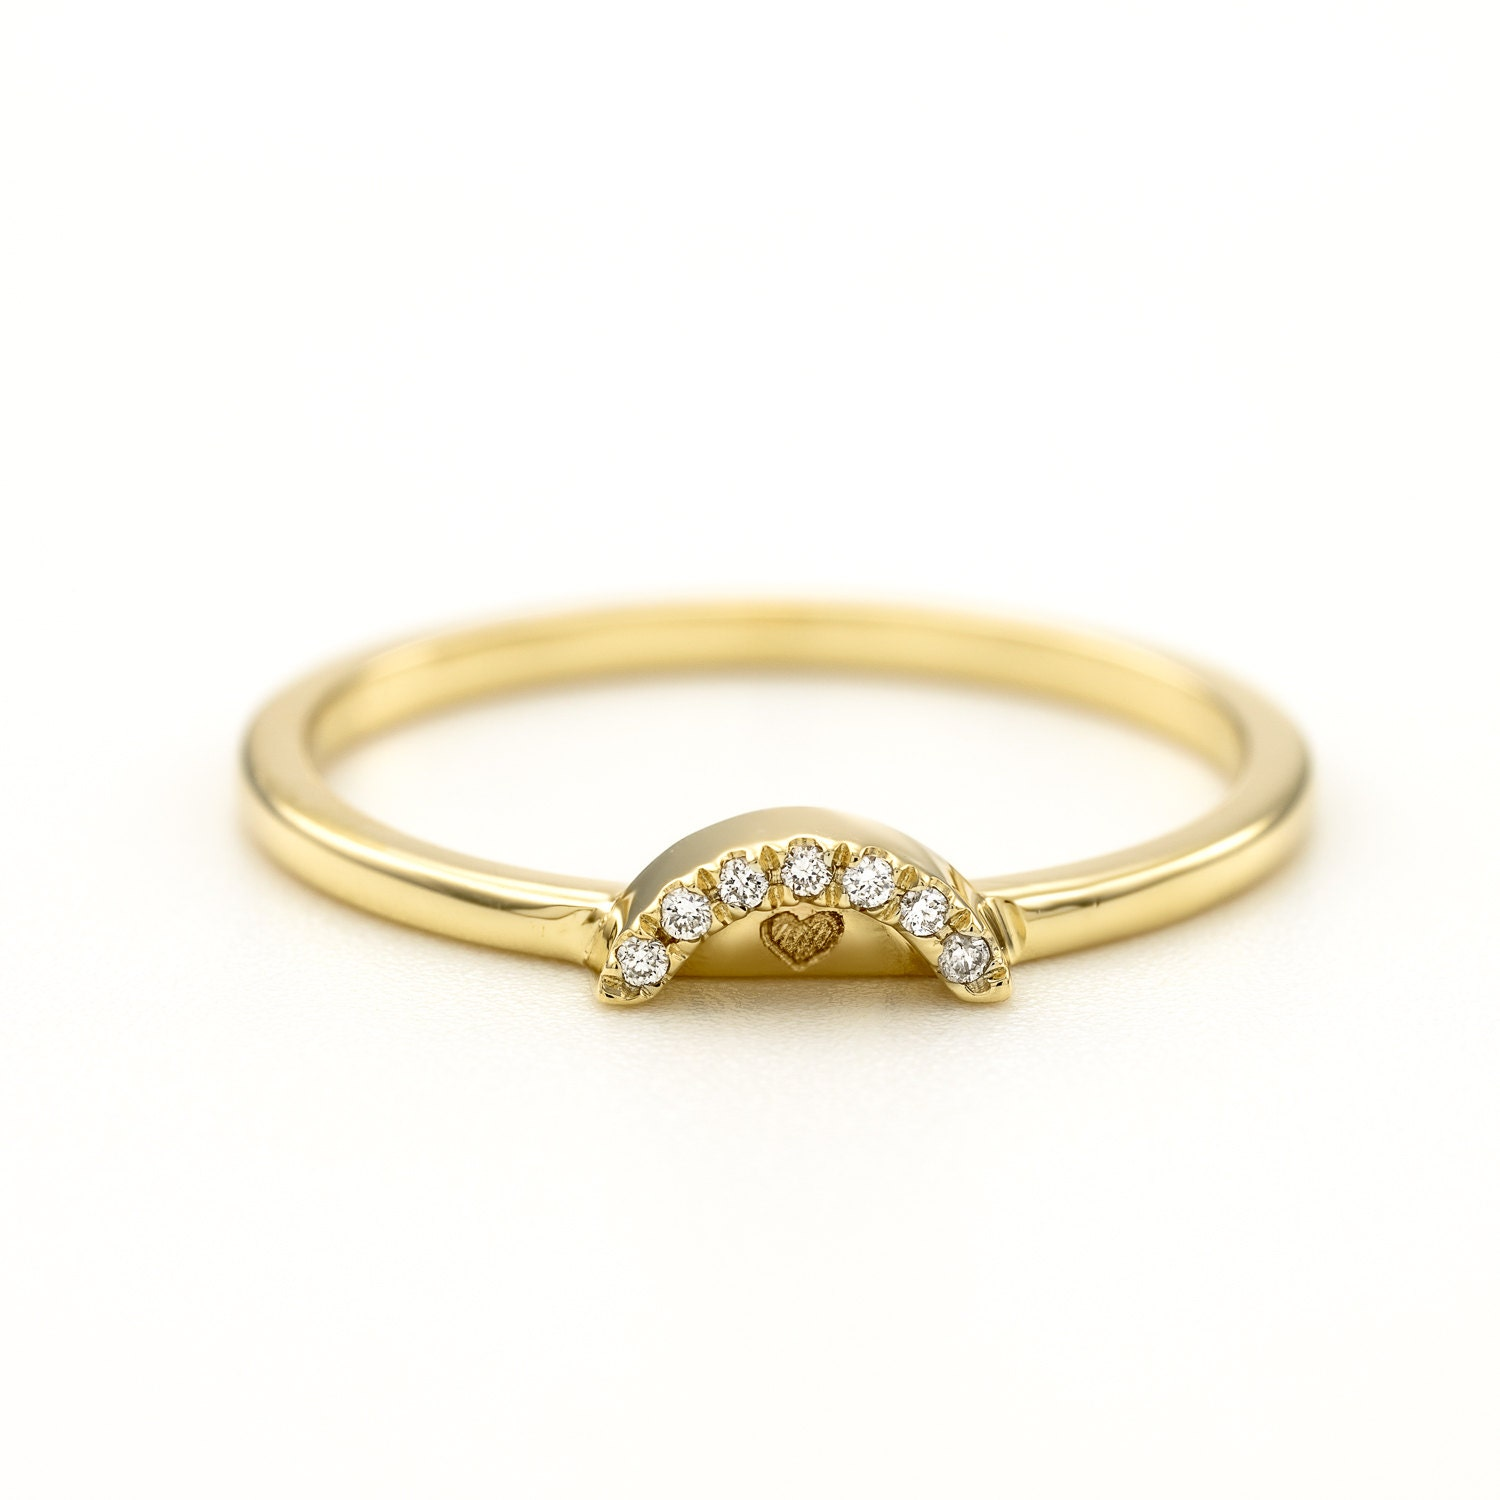 rose skinny hammered things bands thin from ring awesome band diamond texture wedding gold can you learn